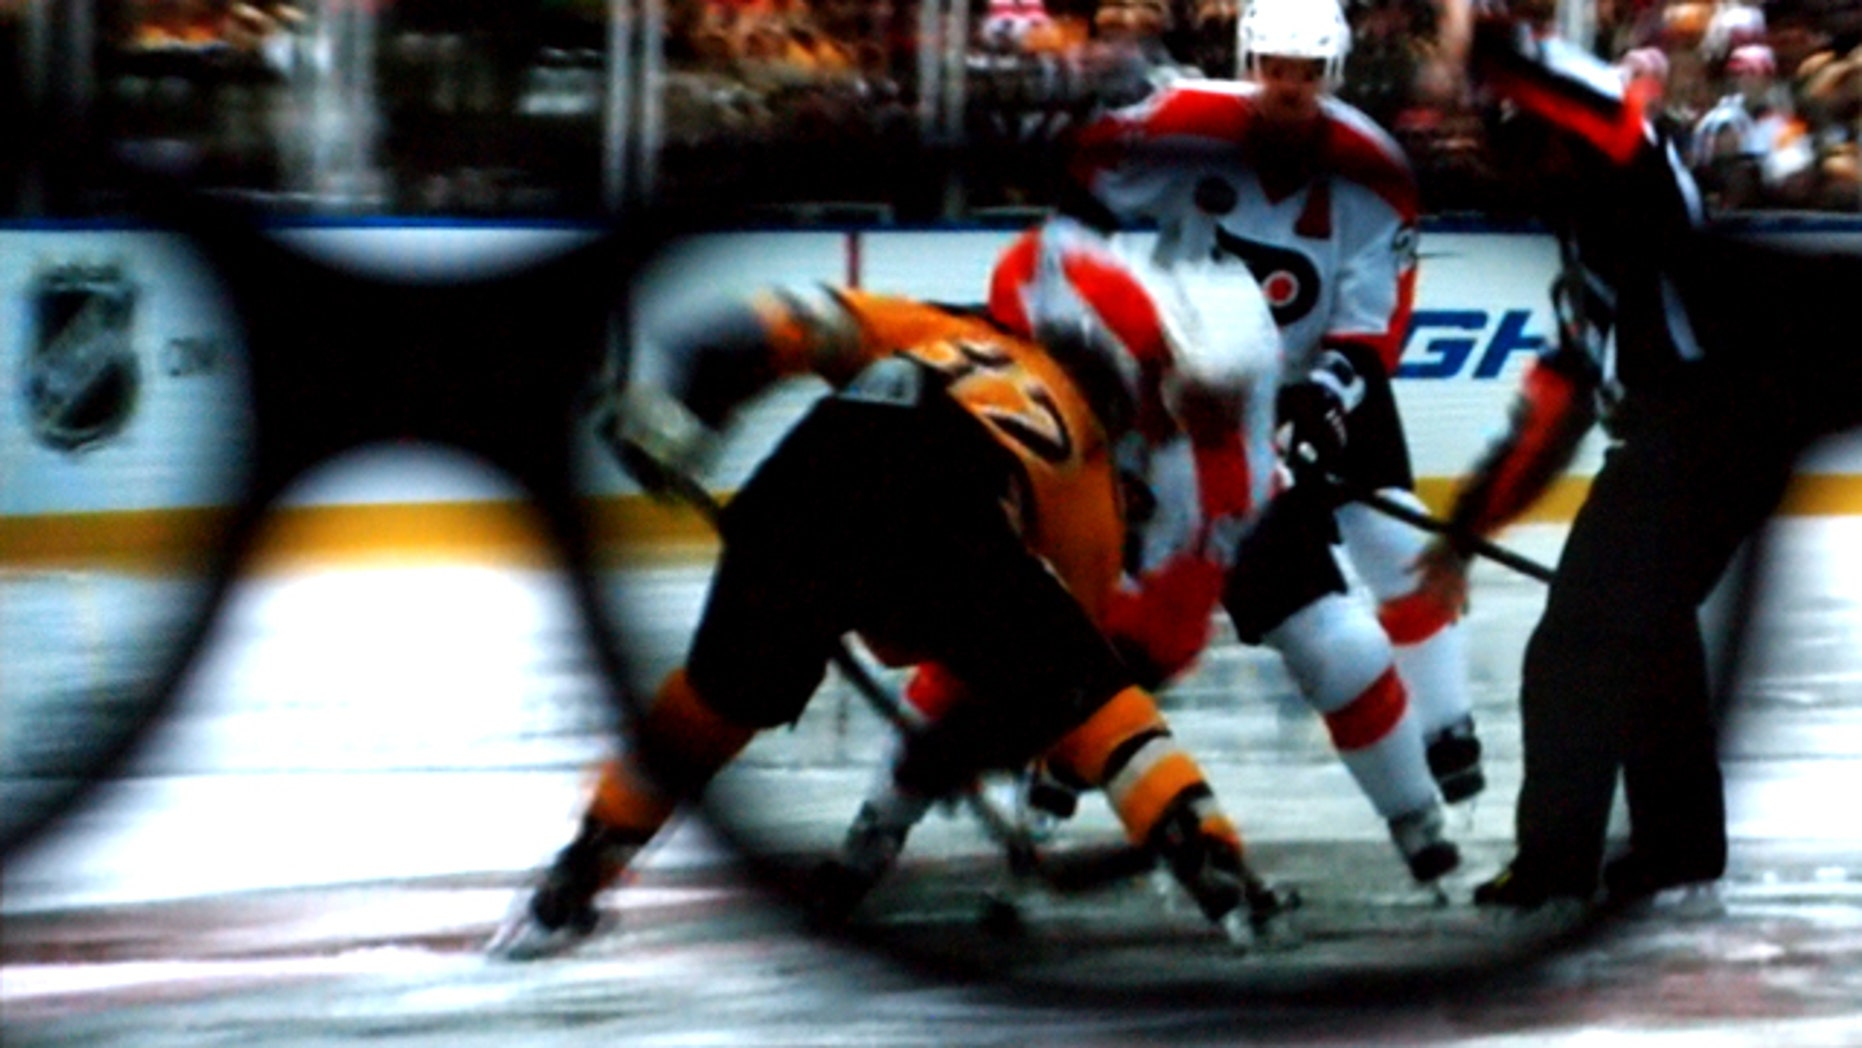 """The view through the 3D lens as the """"Winter Classic"""" -- a hockey match from earlier in the year -- is rebroadcast during intermission at Madison Square Garden Wednesday, March 24, 2010."""